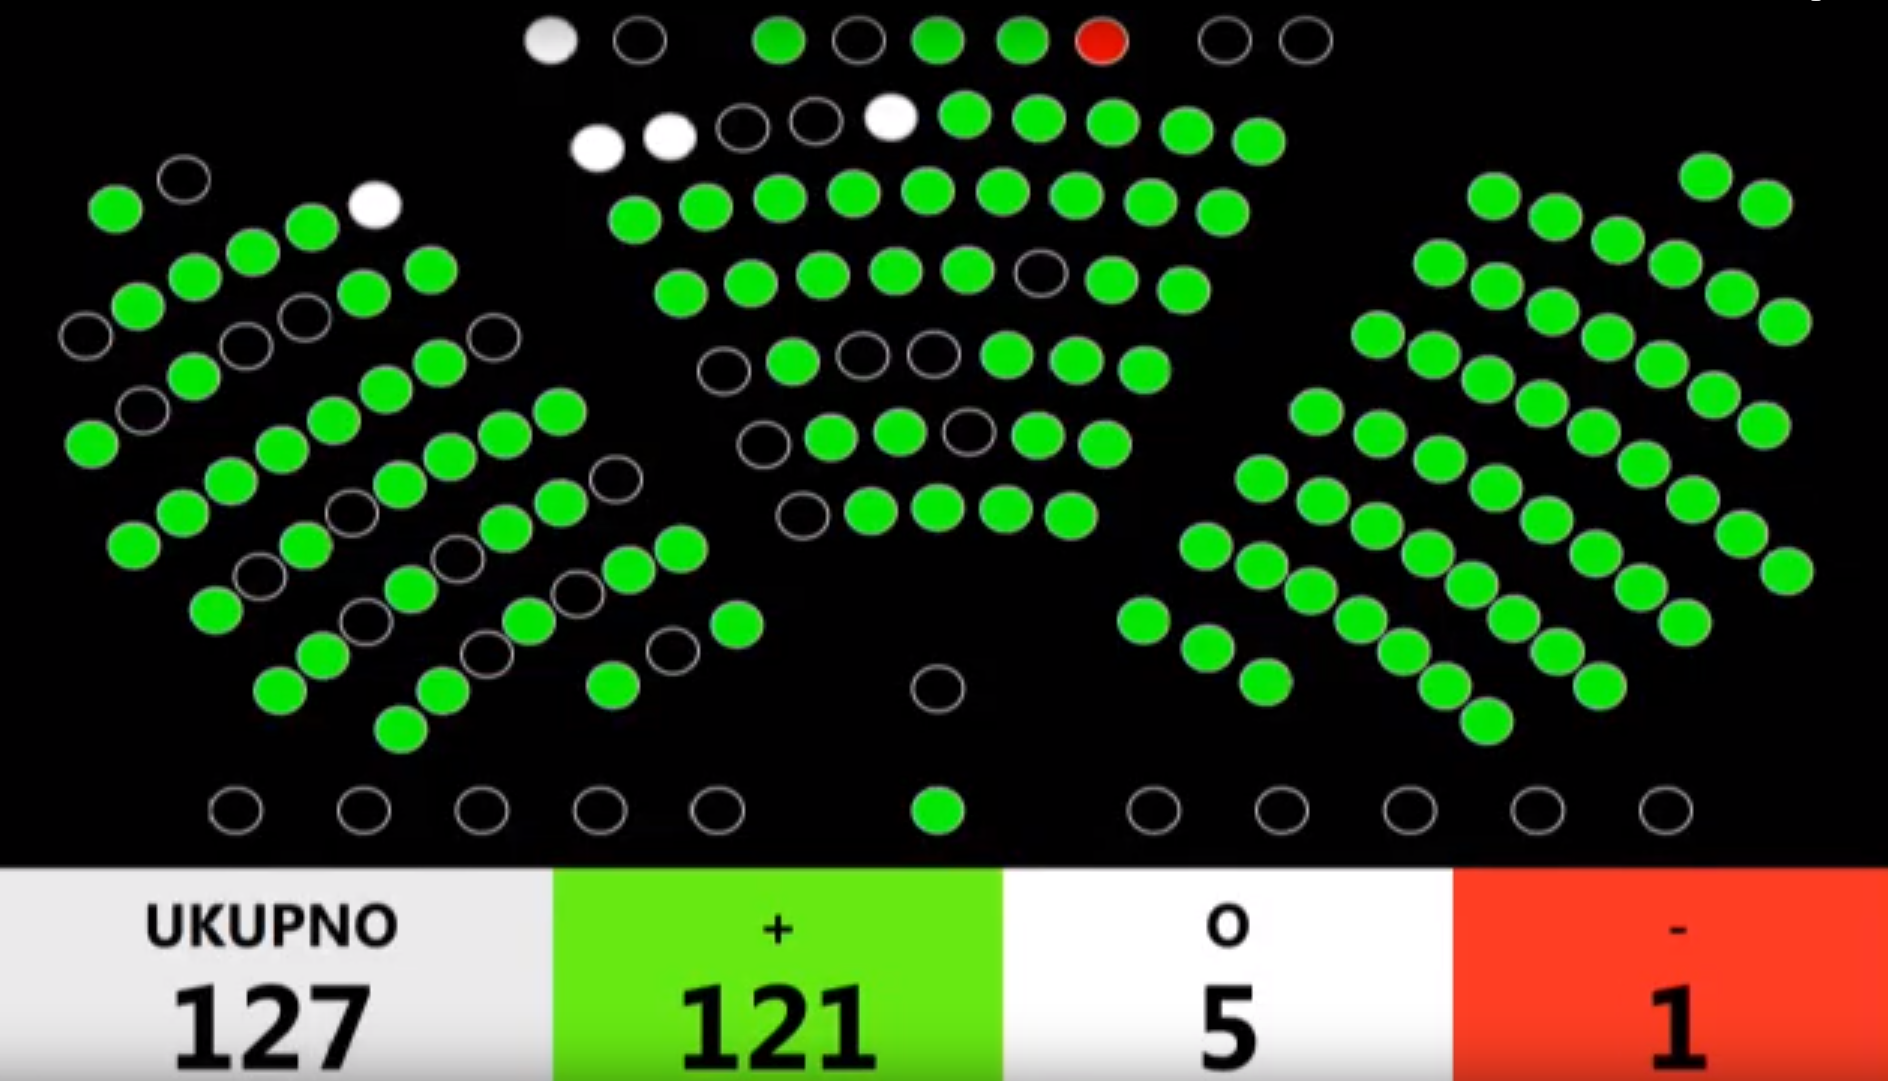 """The picture shows the seats in the Croatian Parliament, the seats of representatives who voted """"for"""" the Law (121 votes), those who abstained in white (5 votes) and those who were """"against"""" in red (1 vote)."""